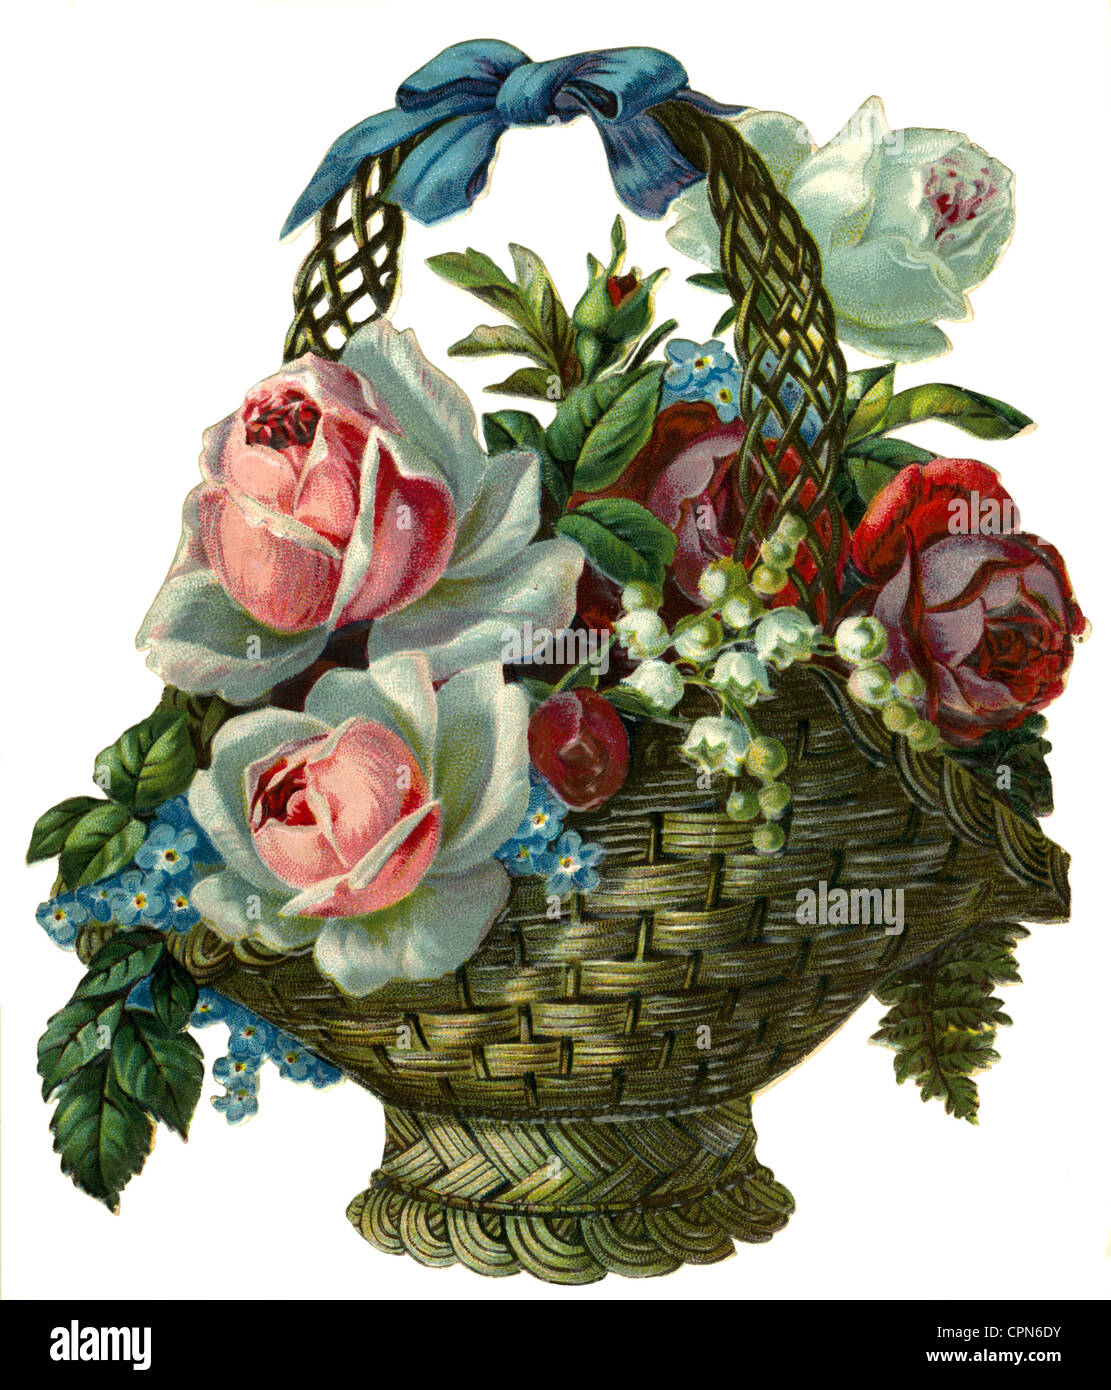 Kitsch Souvenir Flower Bouquet Basket Of Wicker Mesh Scrap Picture Germany 1894 Rose Red White Pink Roses Bo